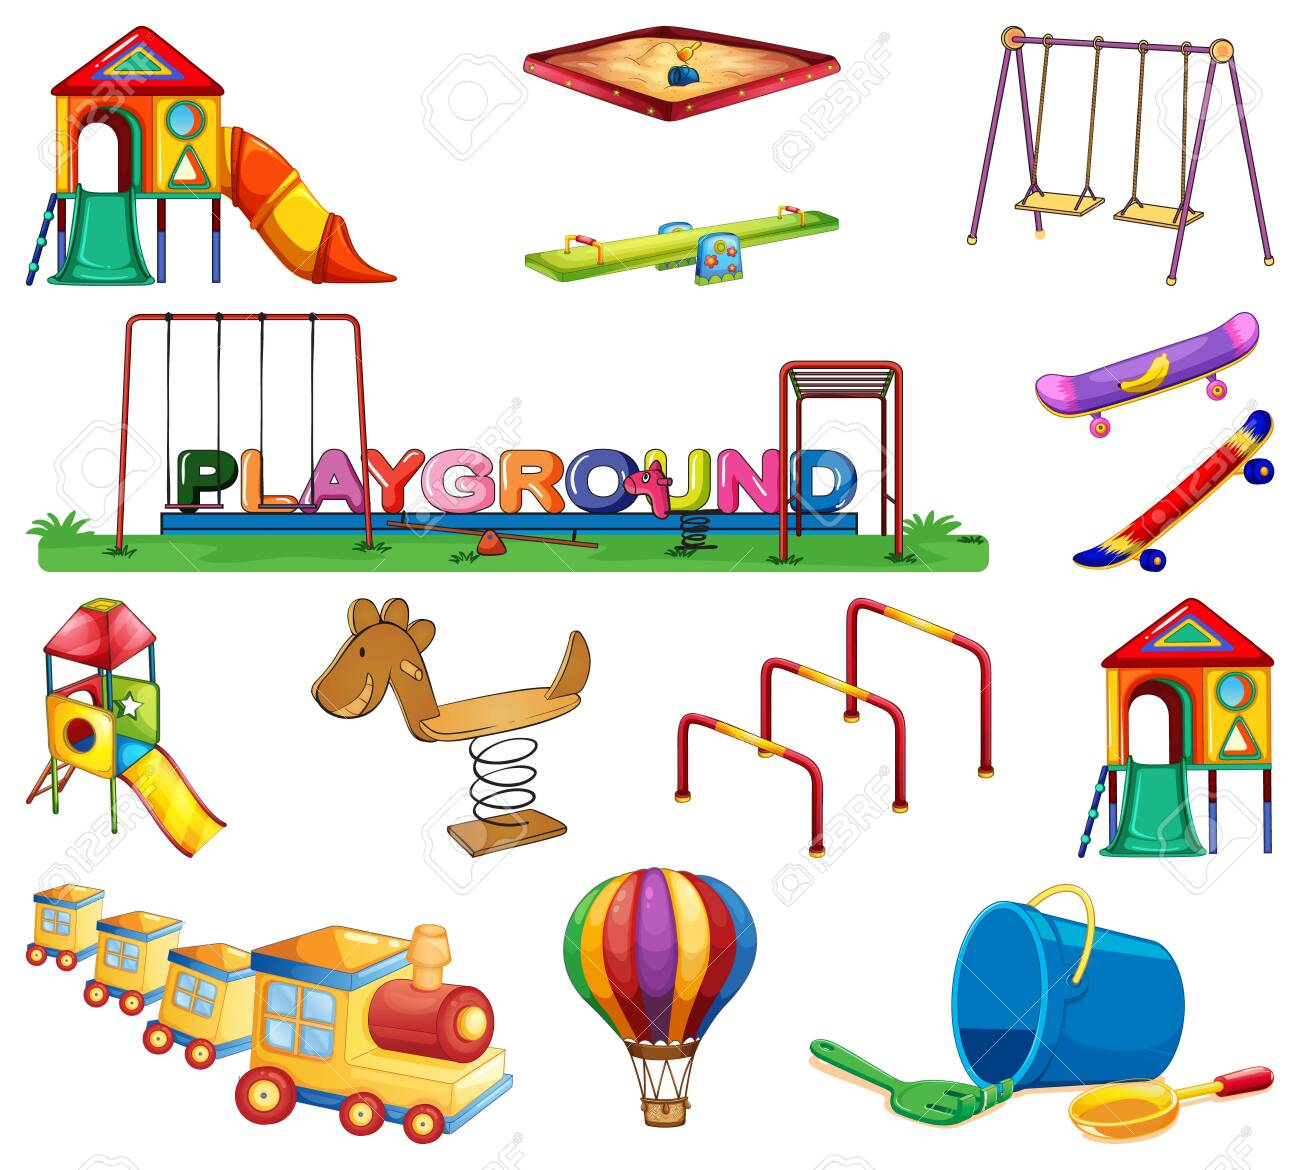 Large set of many play stations in the playground illustration - 144508884